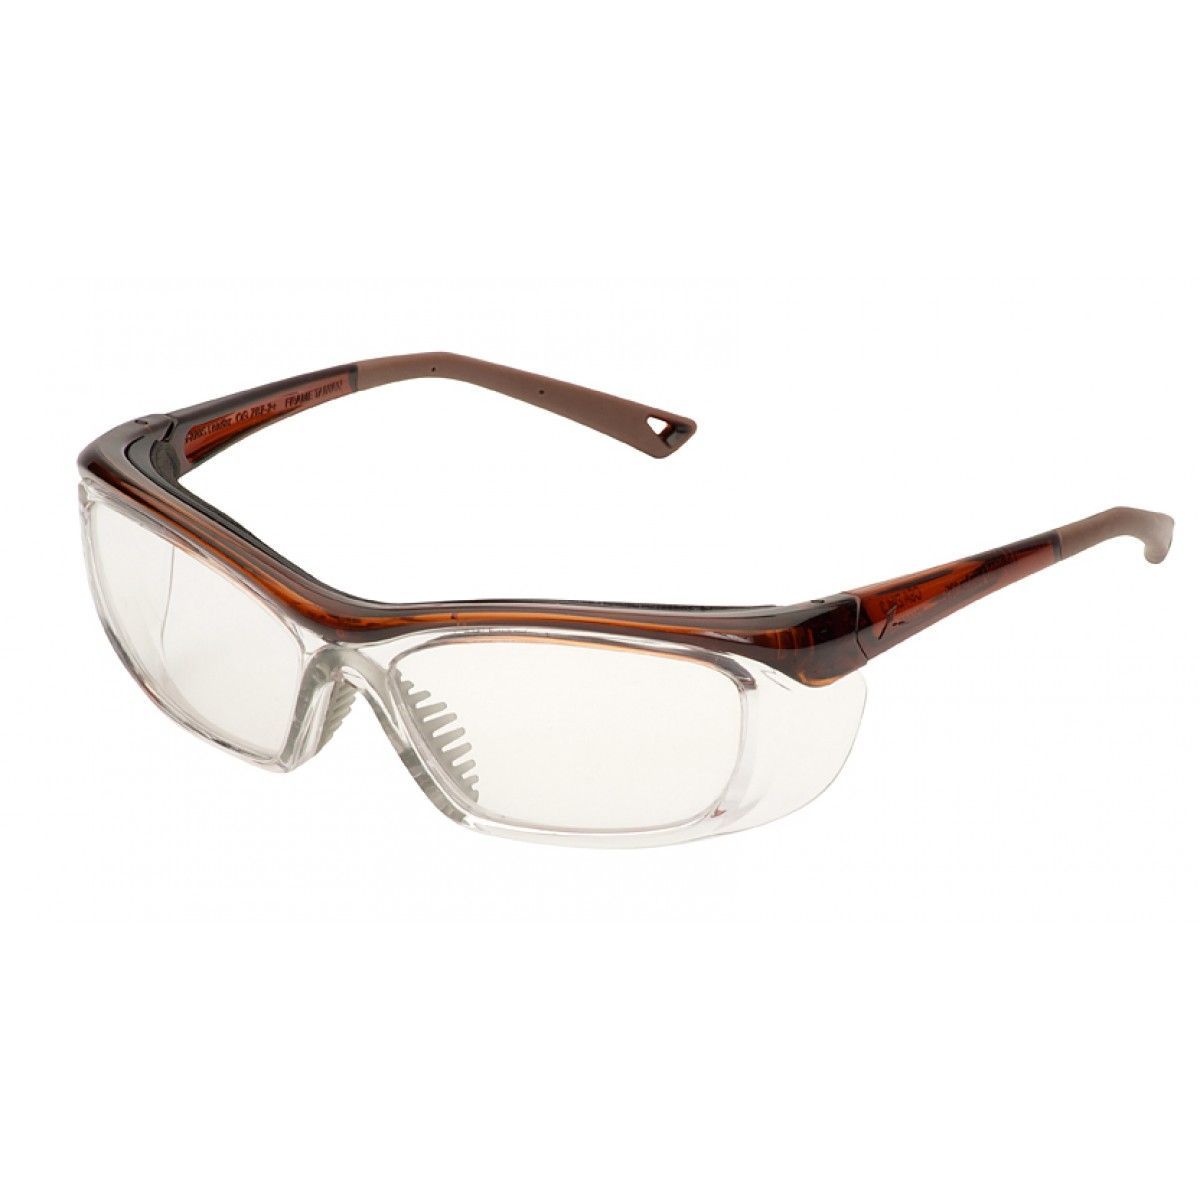 3m safety glasses prescription frames onguard 220s prescription safety glasses clear chestnut brown